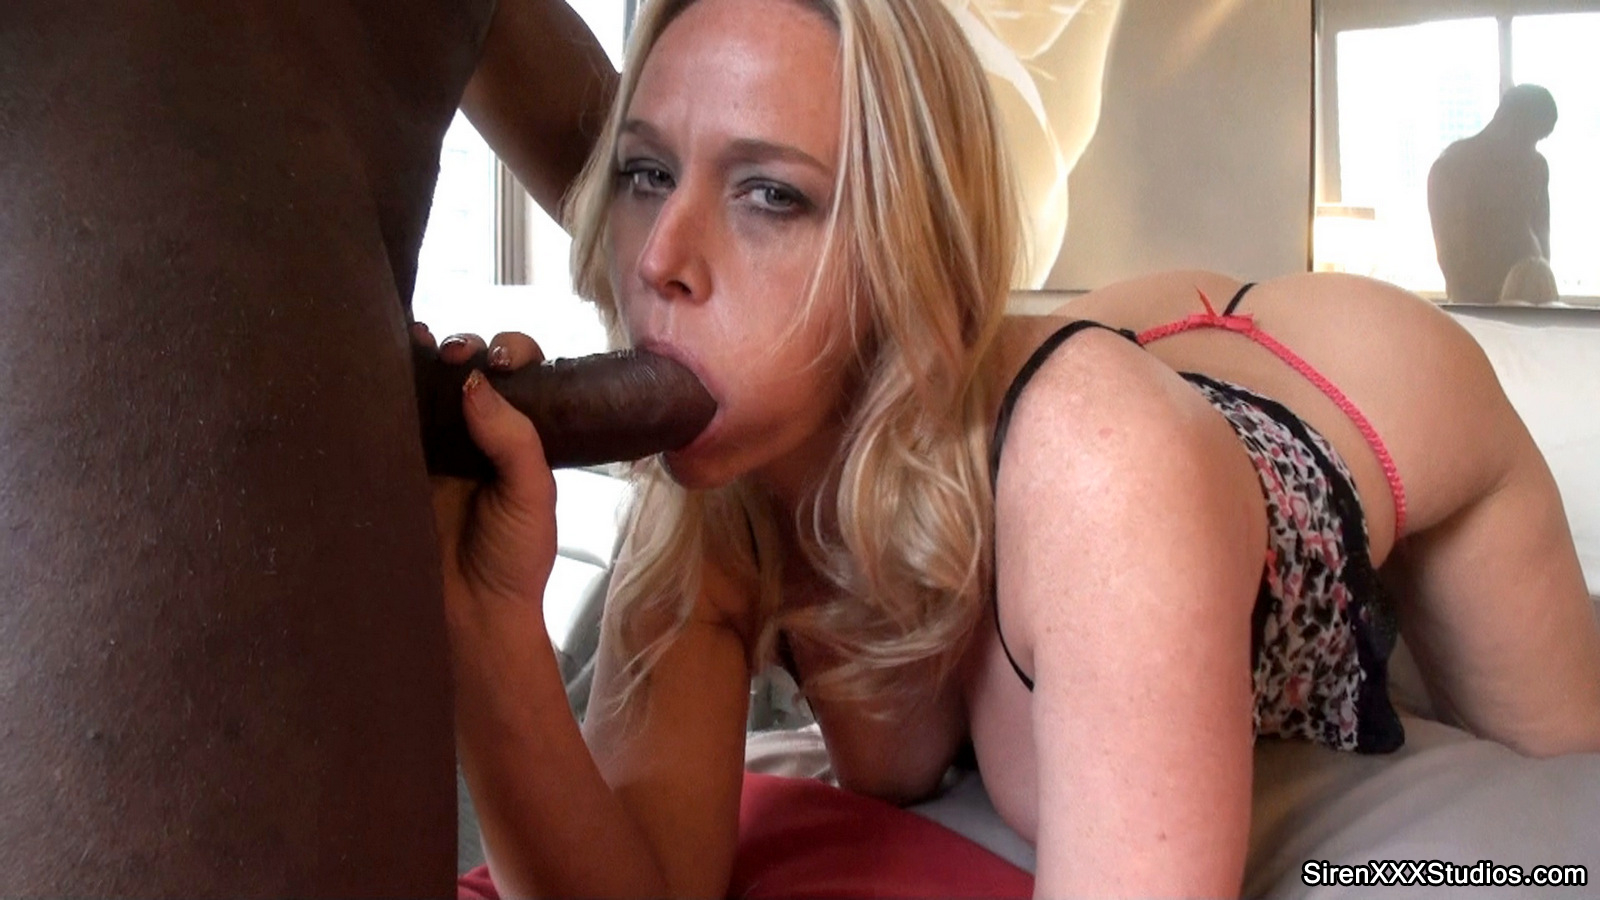 softcore interracial galleries